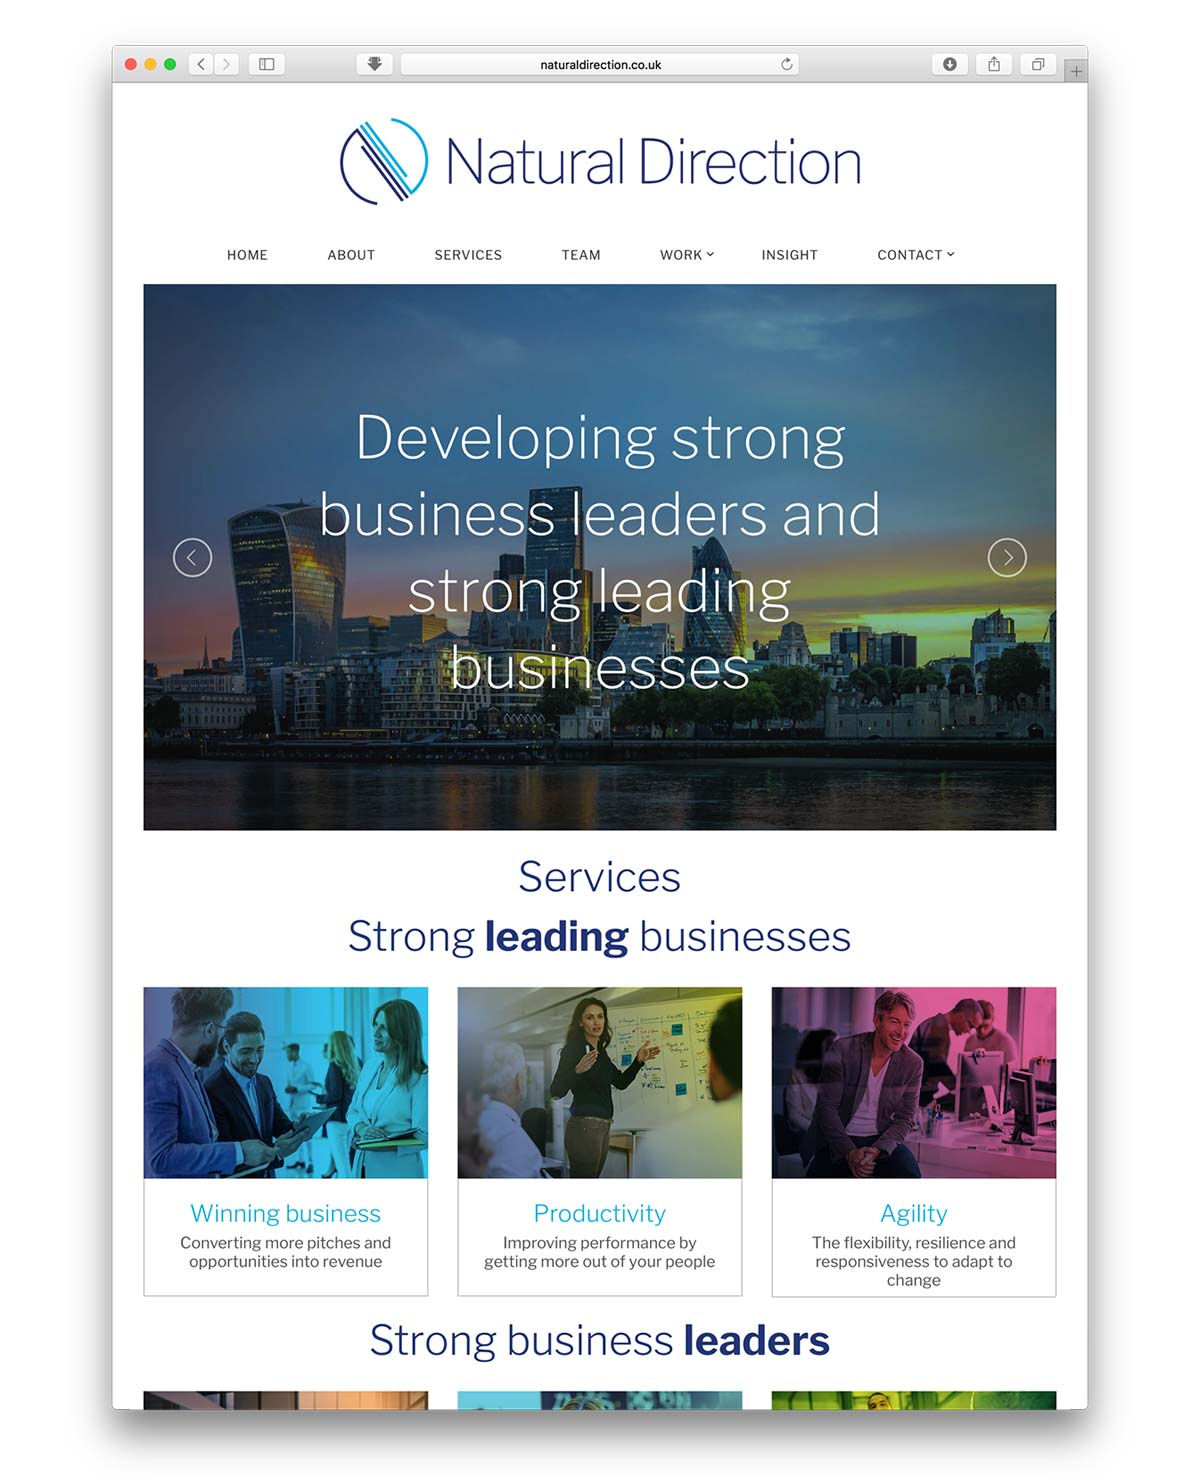 Natural Direction website